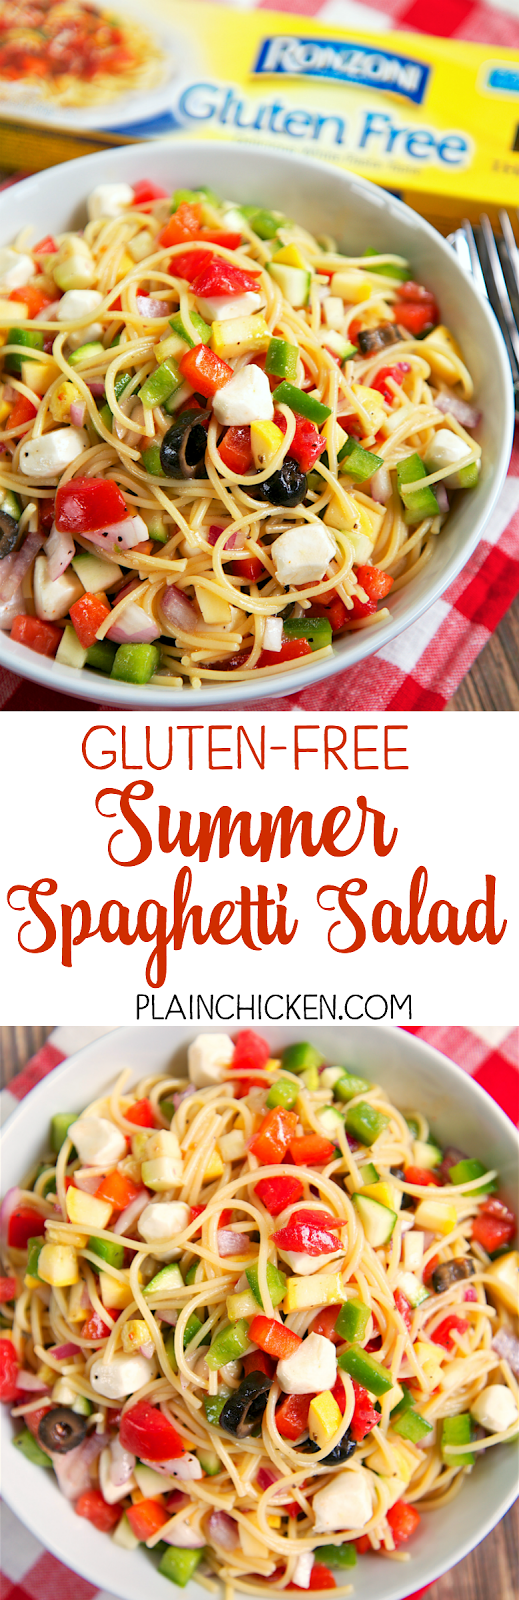 Gluten-Free Summer Spaghetti Salad - nobody will ever know this is gluten-free! Made this for a potluck and everyone raved about it! Pasta salad loaded with squash, zucchini, red bell pepper, green bell pepper, red onion, tomatoes, olives, and mozzarella - all tossed in Italian dressing - SO good!